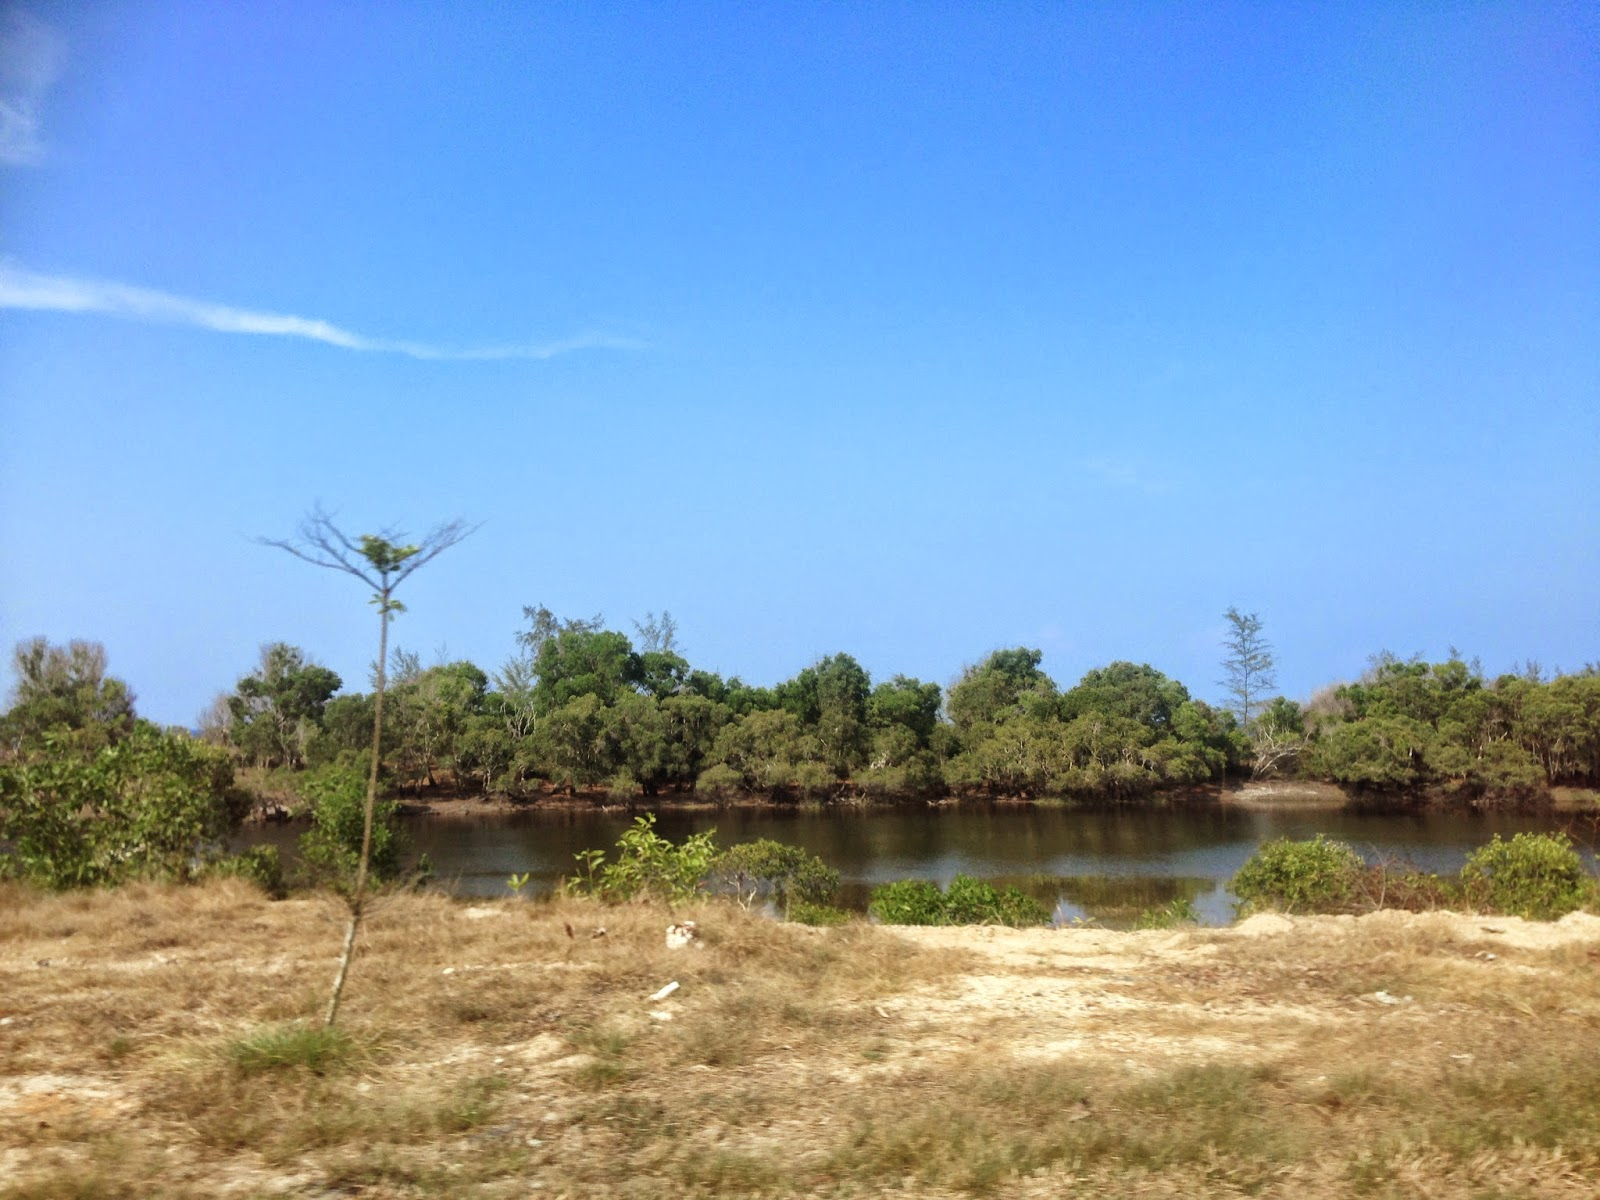 Scenery along the way to Cherating